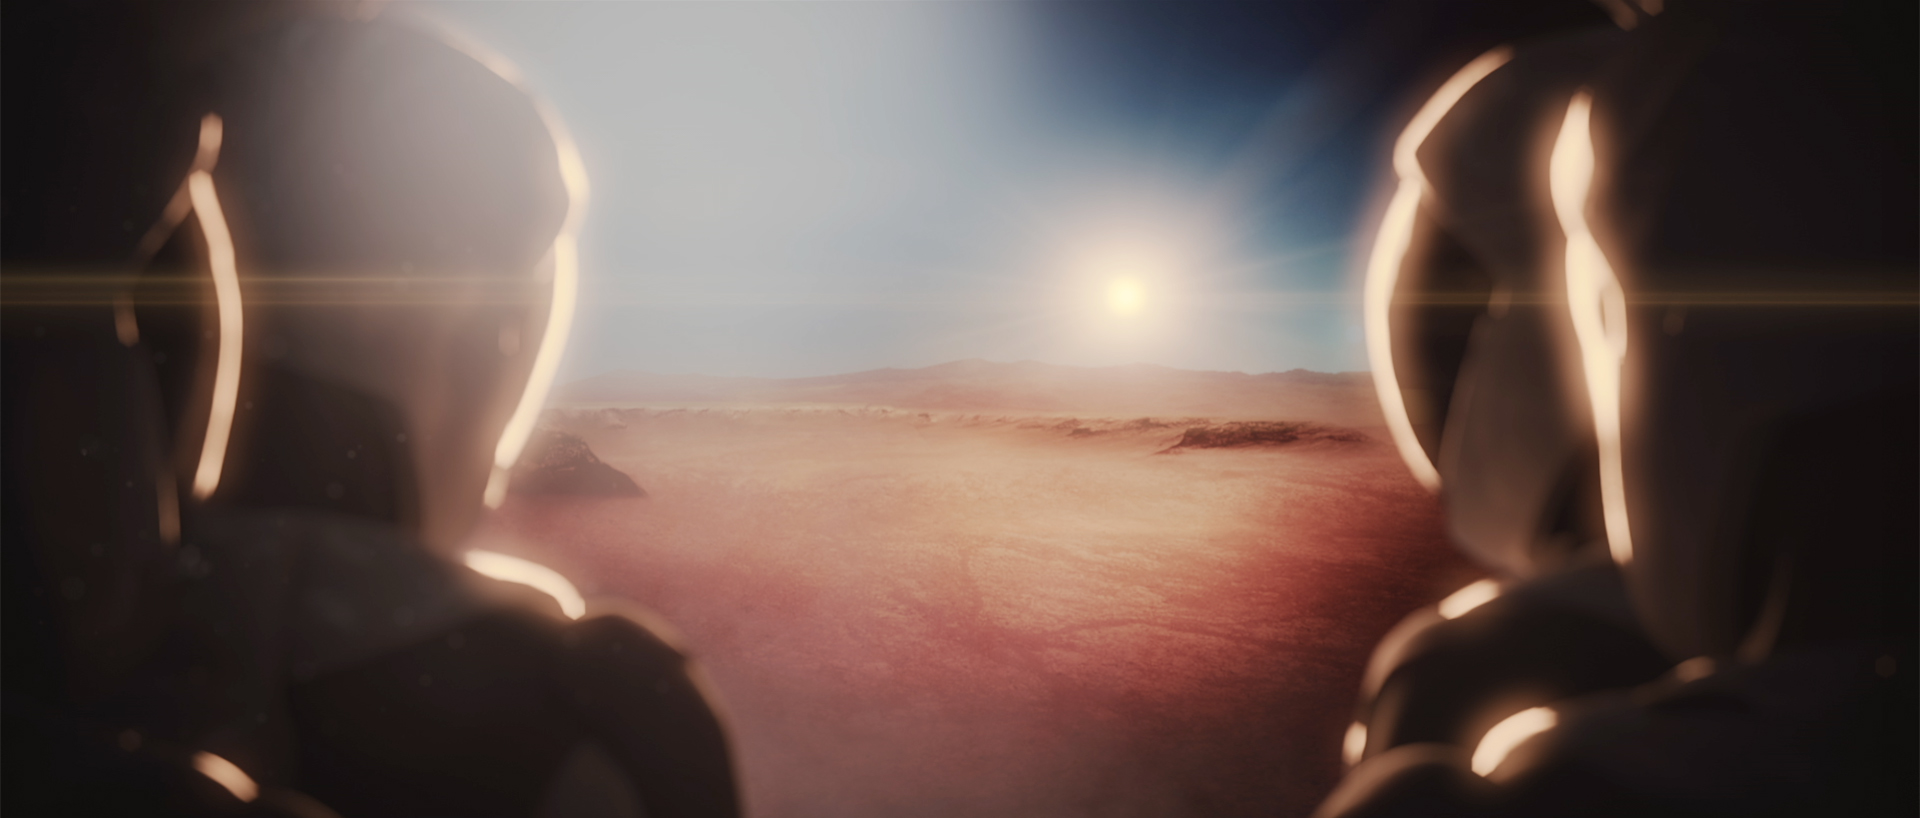 A SpaceX rendering of a human landing on Mars.